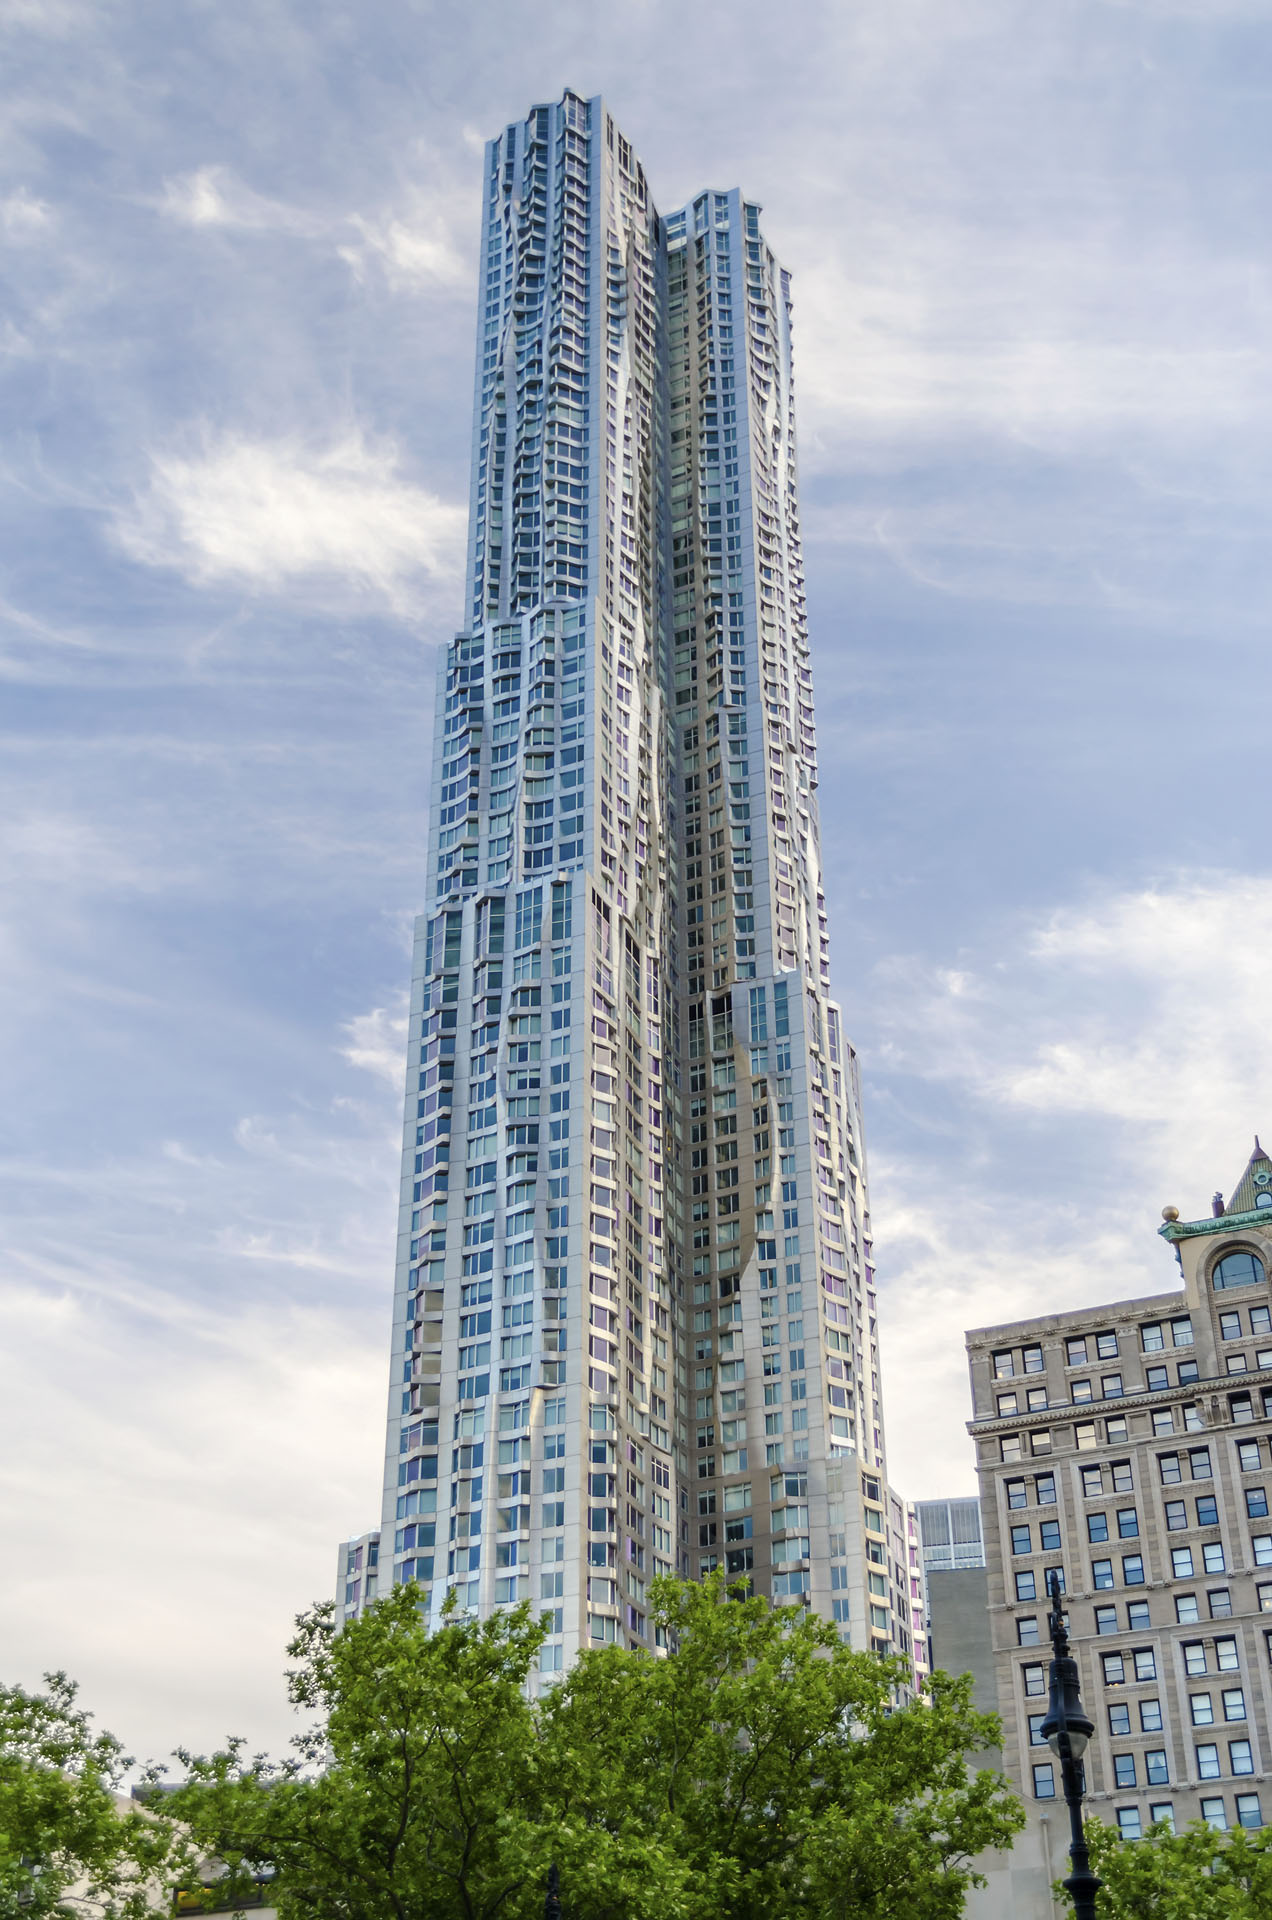 Beekman Tower, New York City, USA